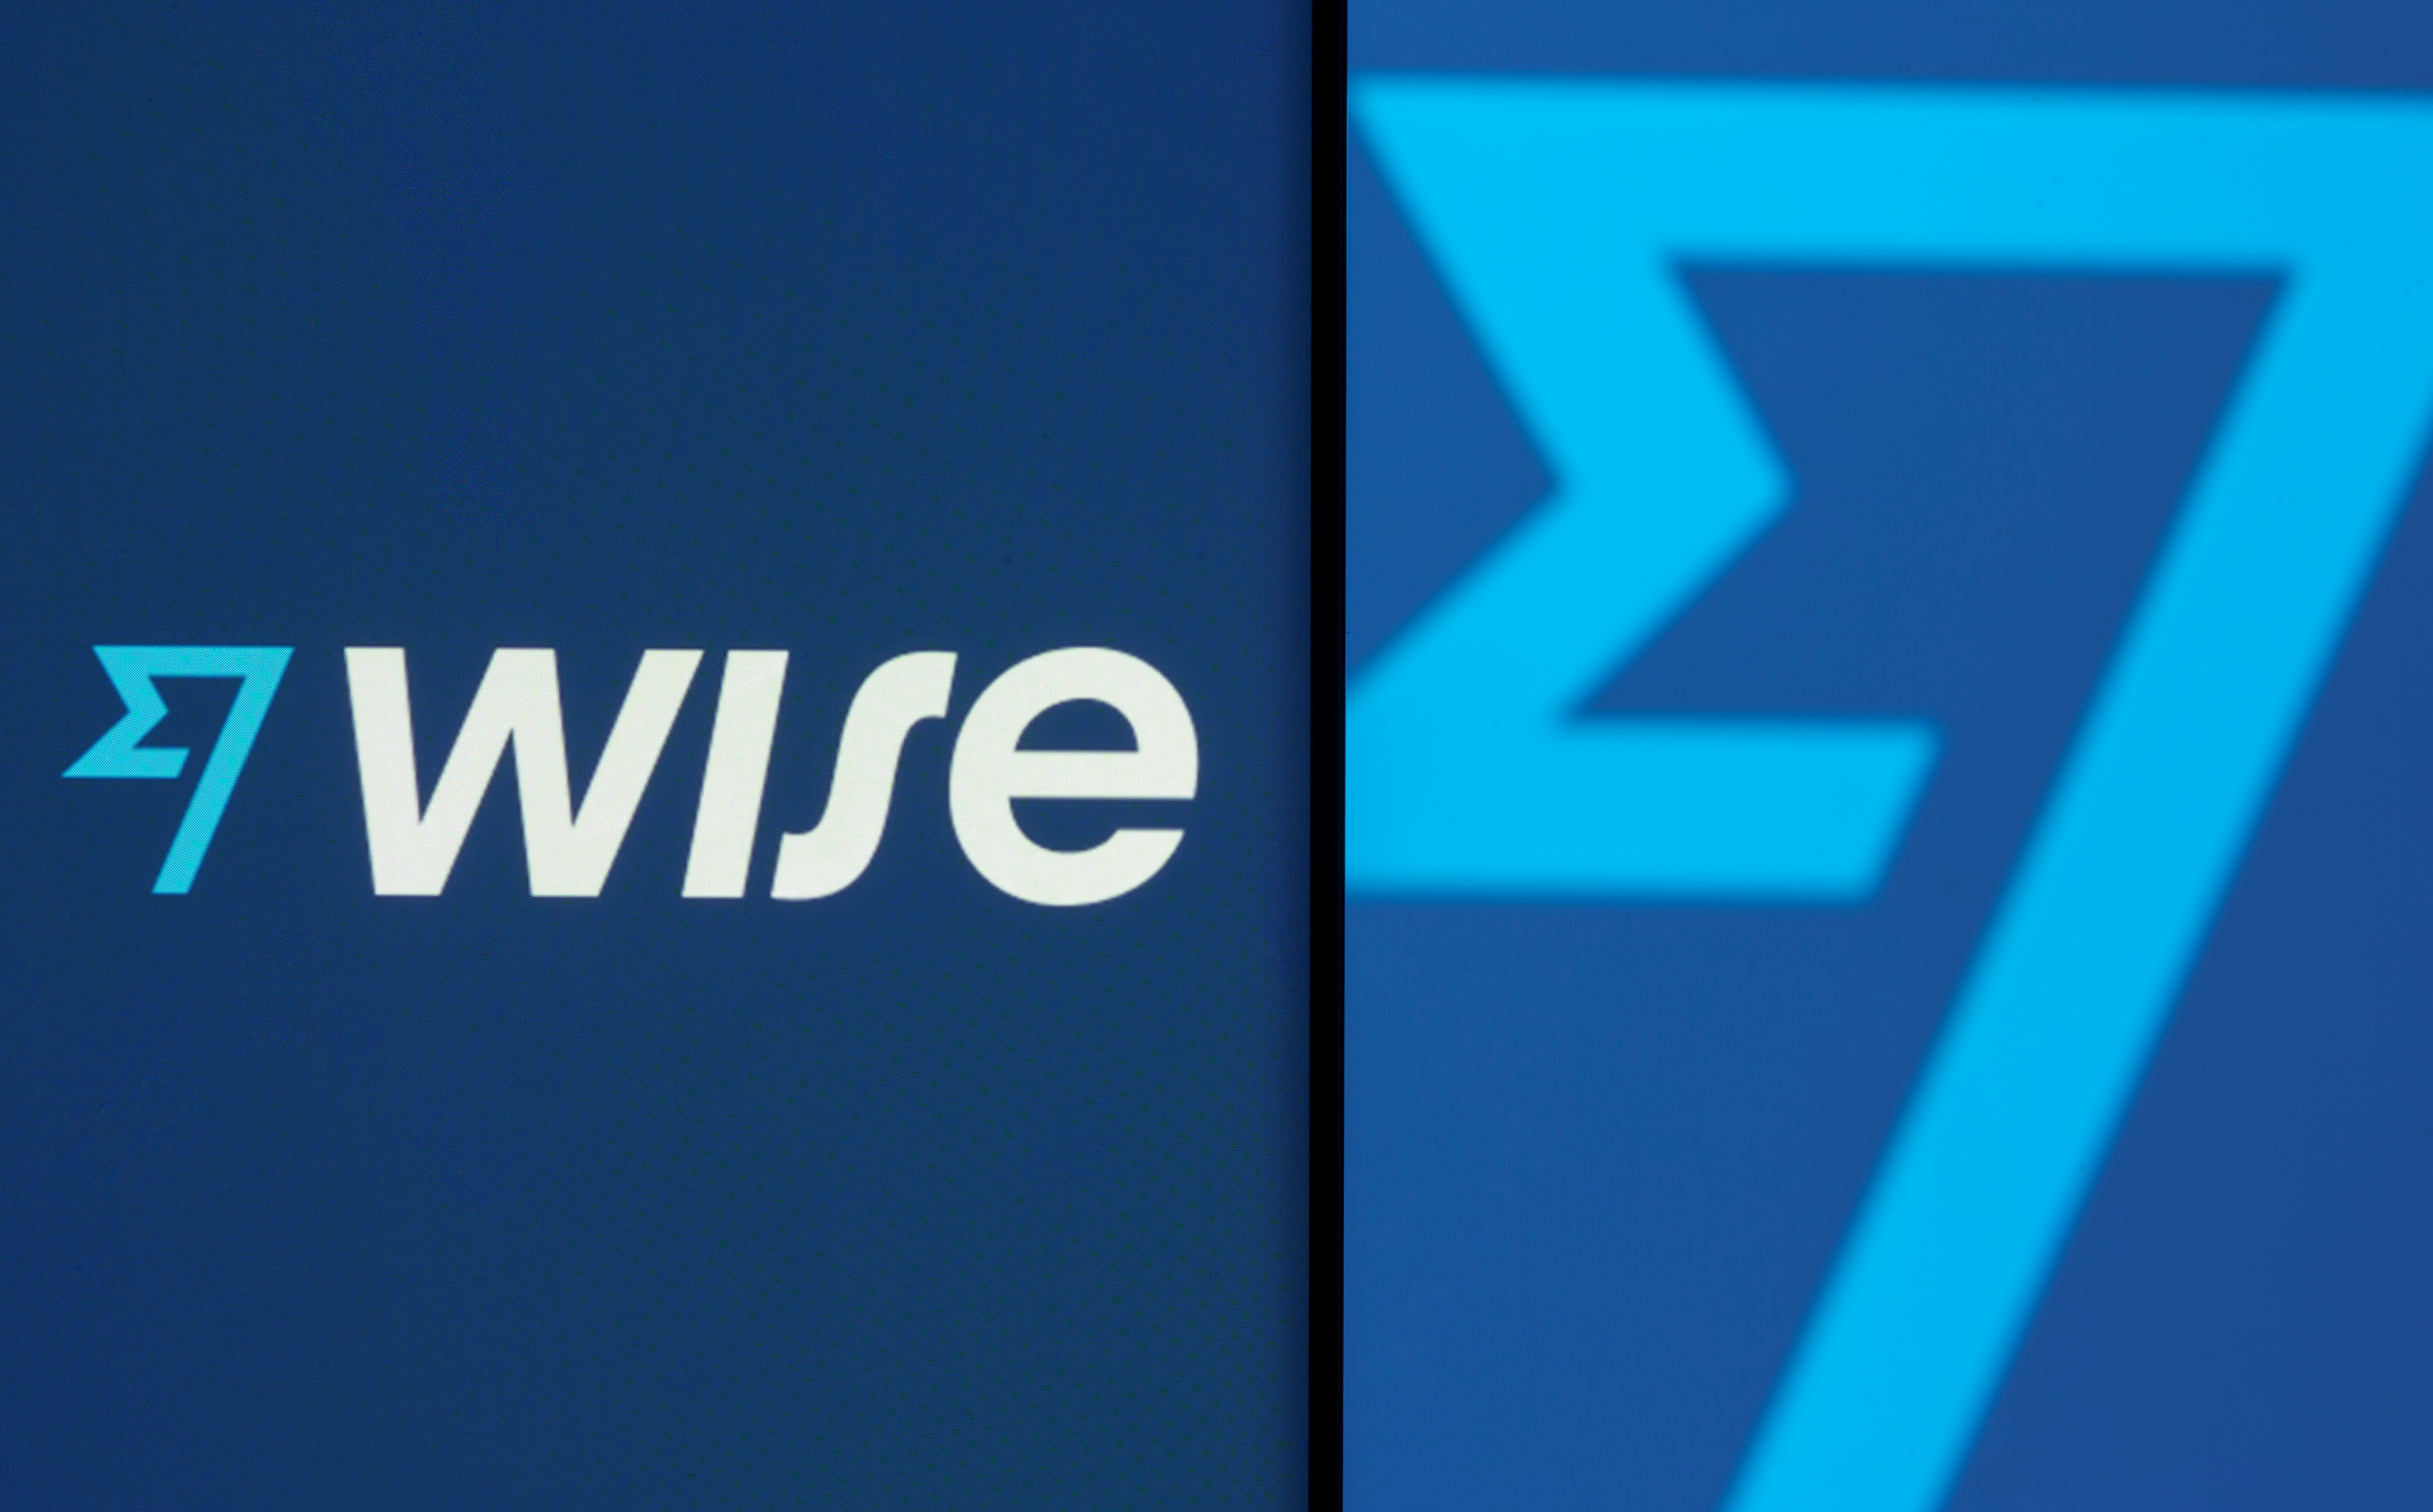 Wise logo is seen on a smartphone in front of a displayed detail of the same logo in this illustration taken June 18, 2021. REUTERS/Dado Ruvic/Illustration